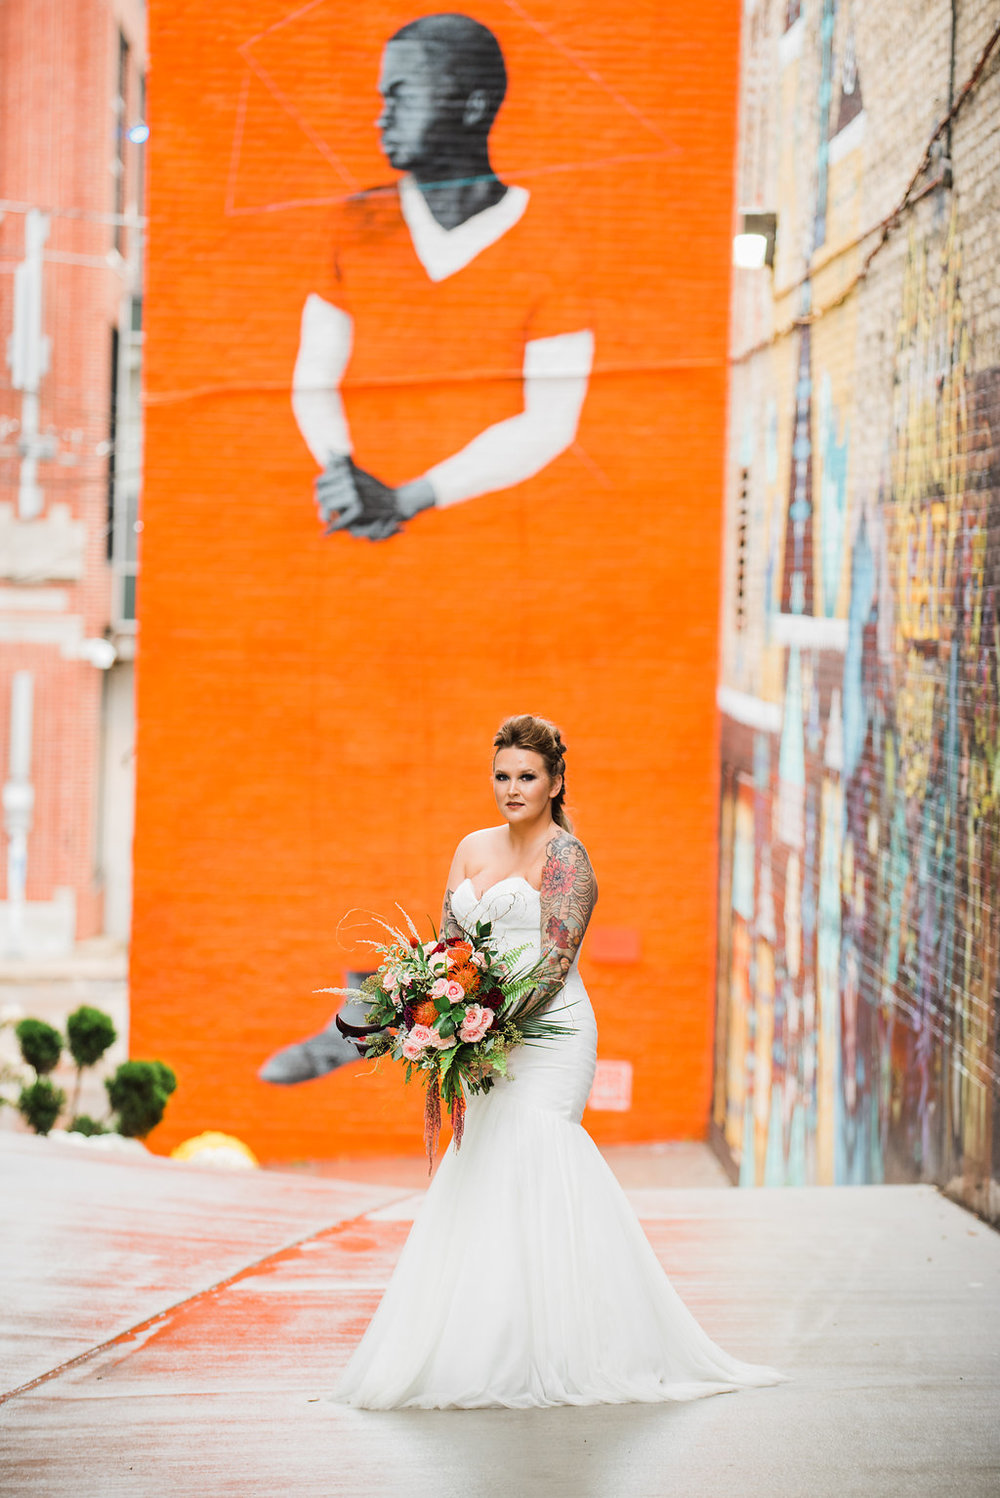 Milwaukee-Wisconsin-Wedding-Photographer-Black-Cat-Alley-Styled-Bridal-Shoot-39.jpg